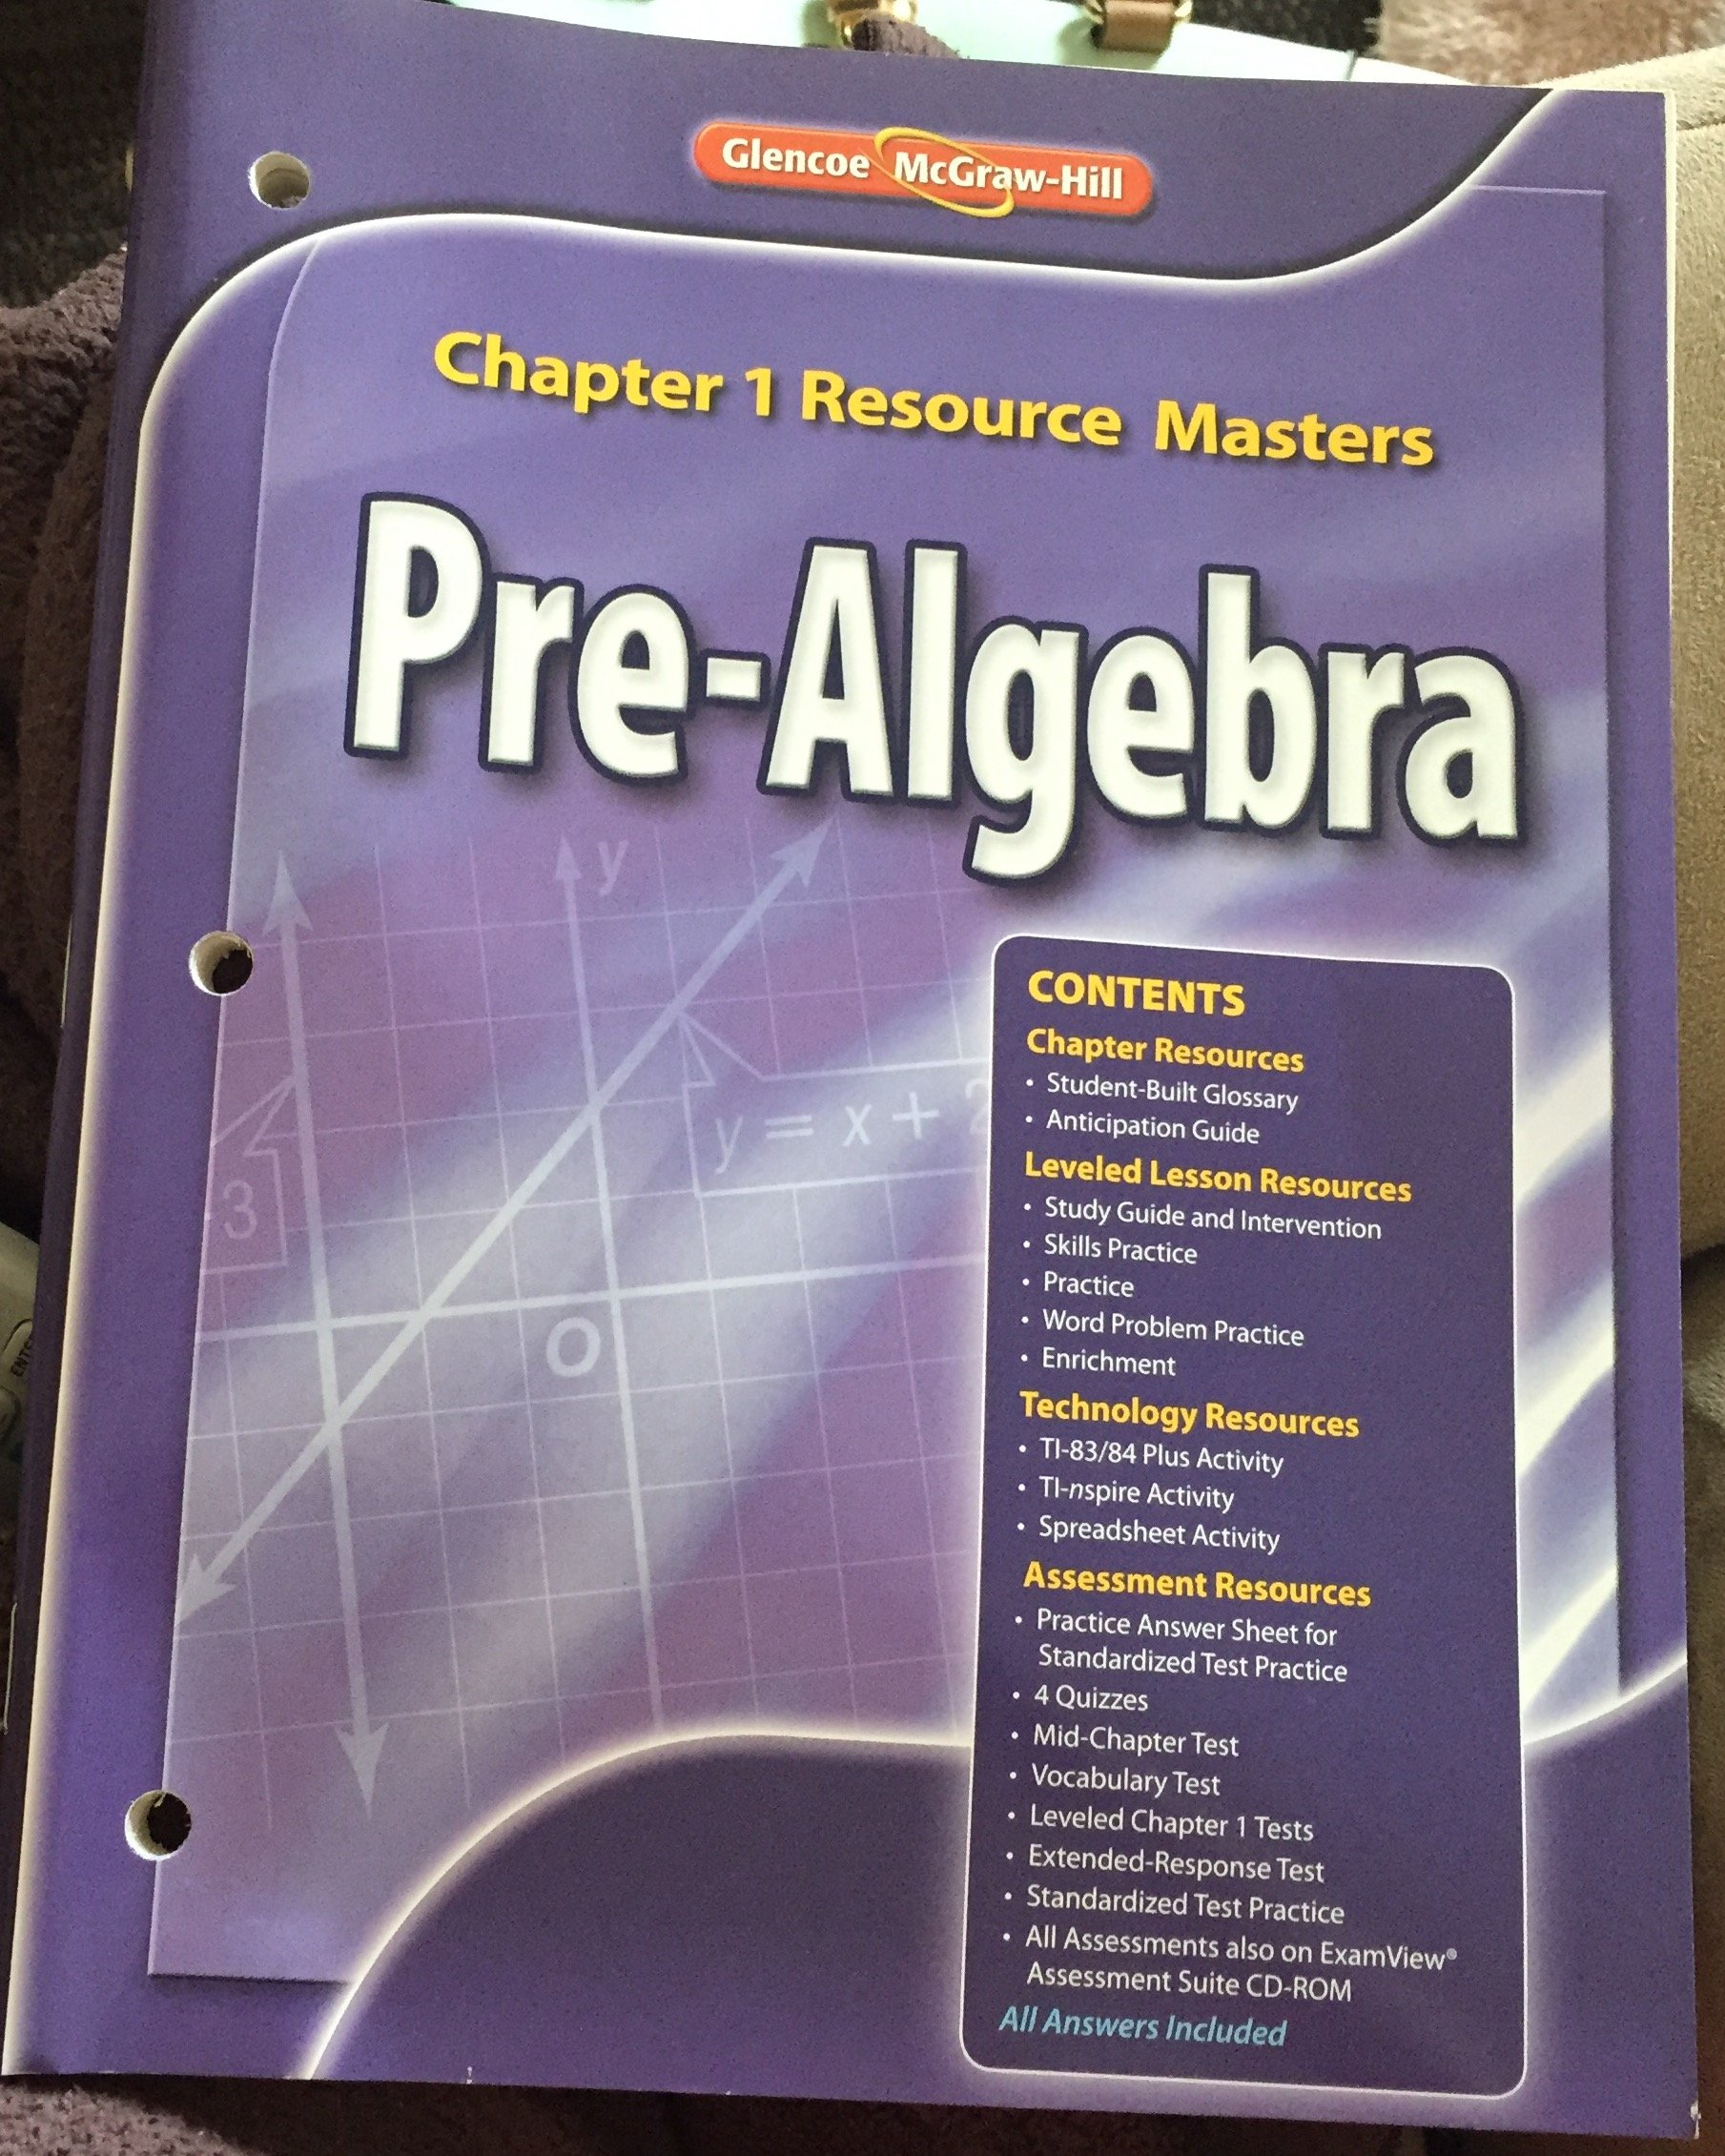 Glencoe Pre-Algebra Chapter 1 Resource Masters: many